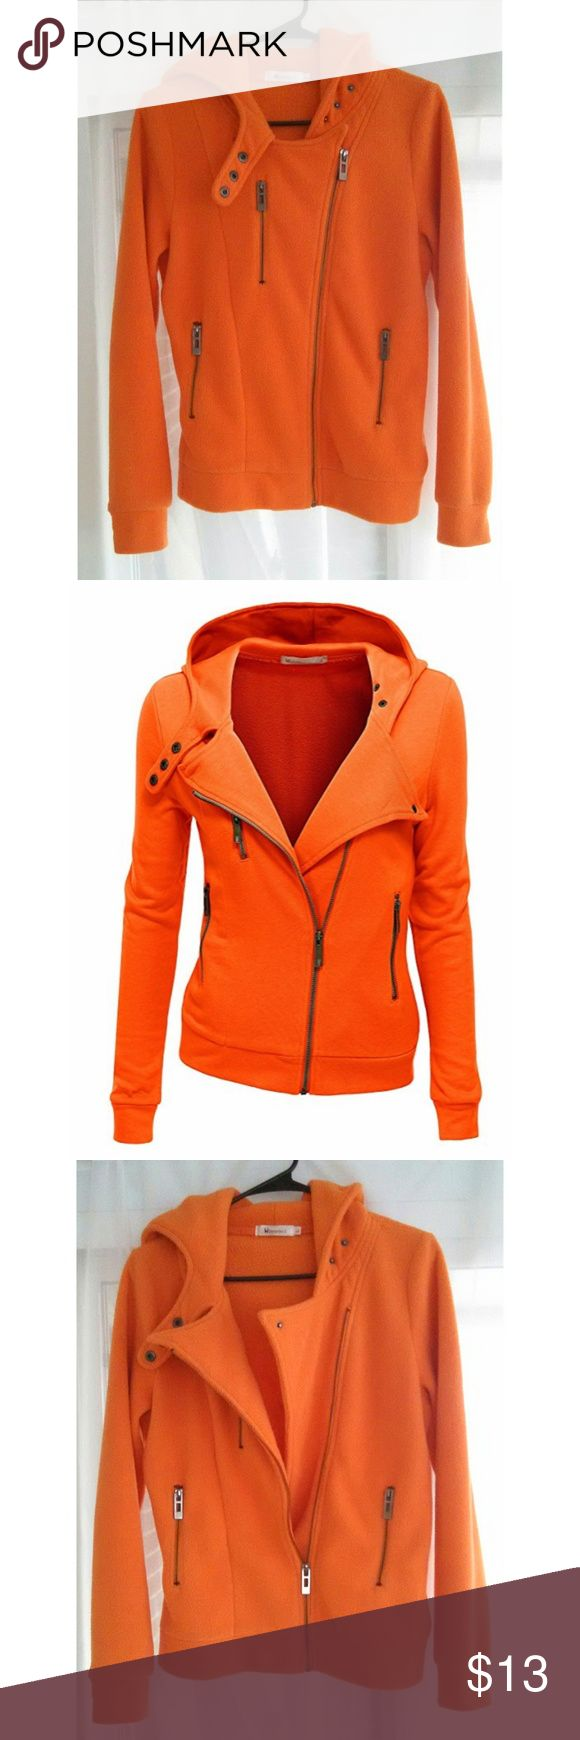 Bright Orange Fleece Asymmetrical Style Full Zip Doublju brand slim fit fleece zip up hoodie jacket, size L, which runs about 2 sizes smaller, so fits closer like an XS/S women's.   Gently loved condition, no stains, no holes, no pilling.  Smoke free No trades Please feel free to ask questions or make offers/bundles! Thanks for looking :) Doublju Jackets & Coats